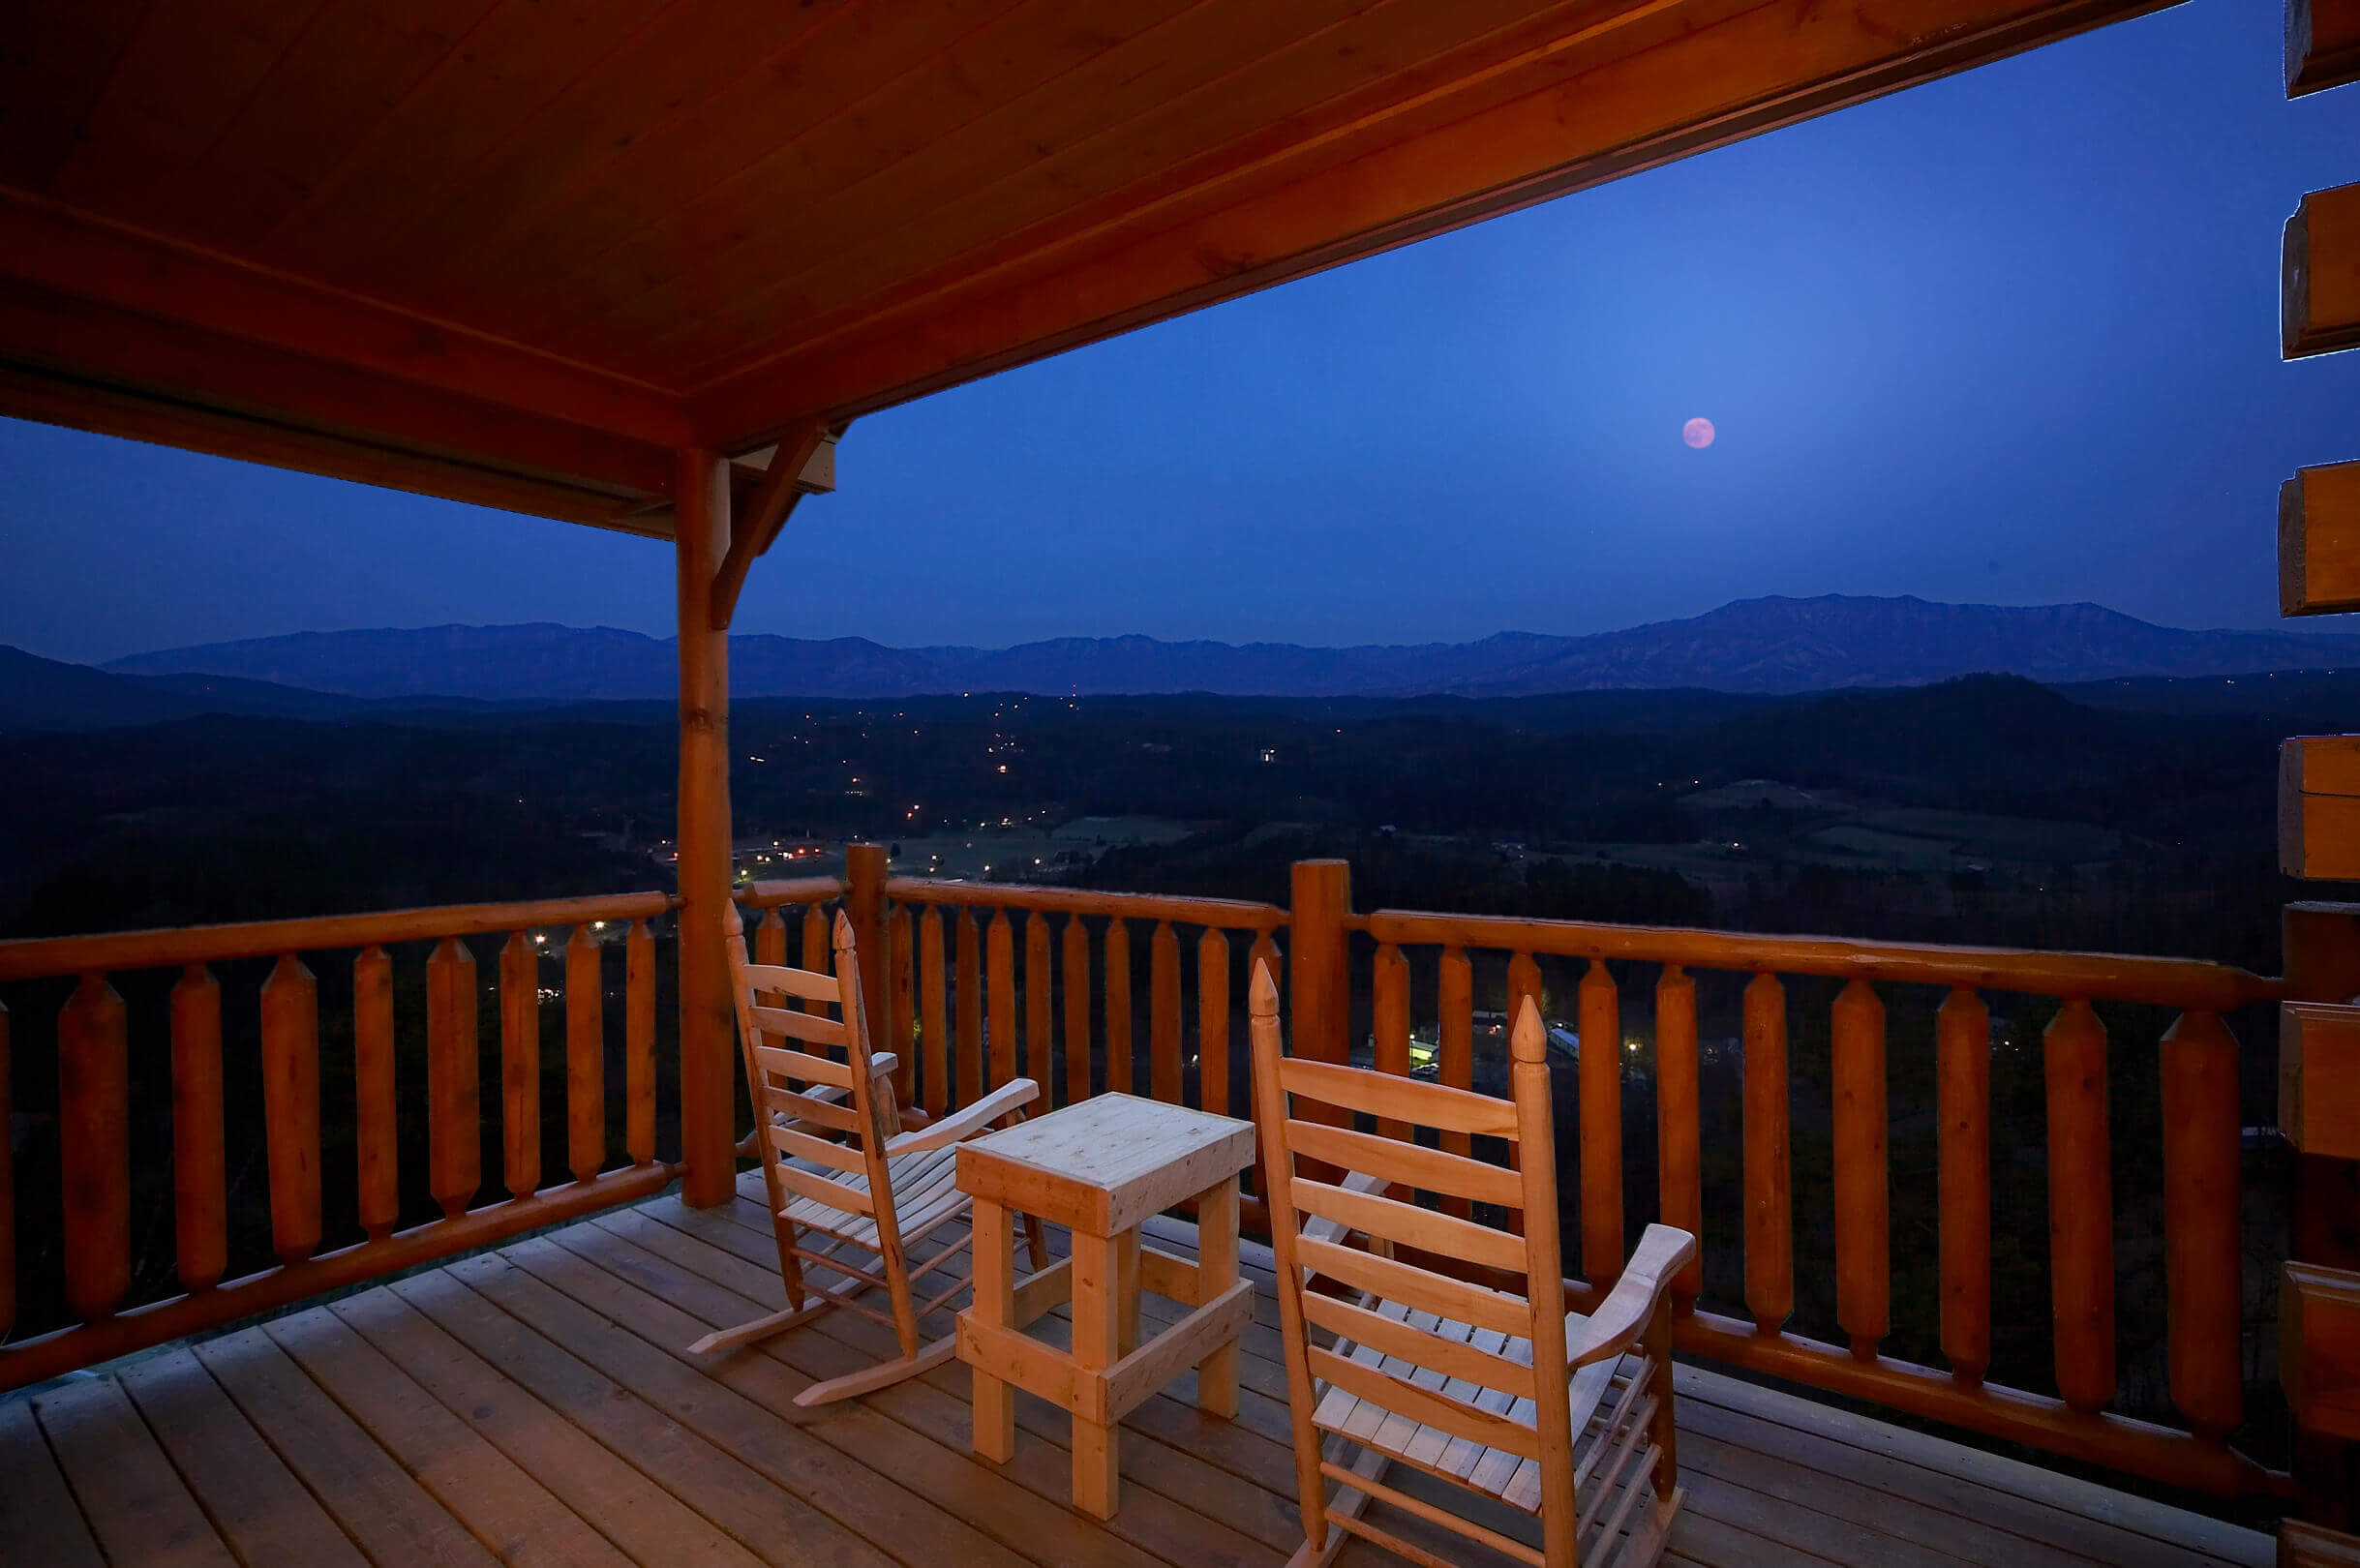 best river convenient view in bedroom pigeon little forge that on vacation fishing of the cabins a riverfront two rental features mountain smoky cabin